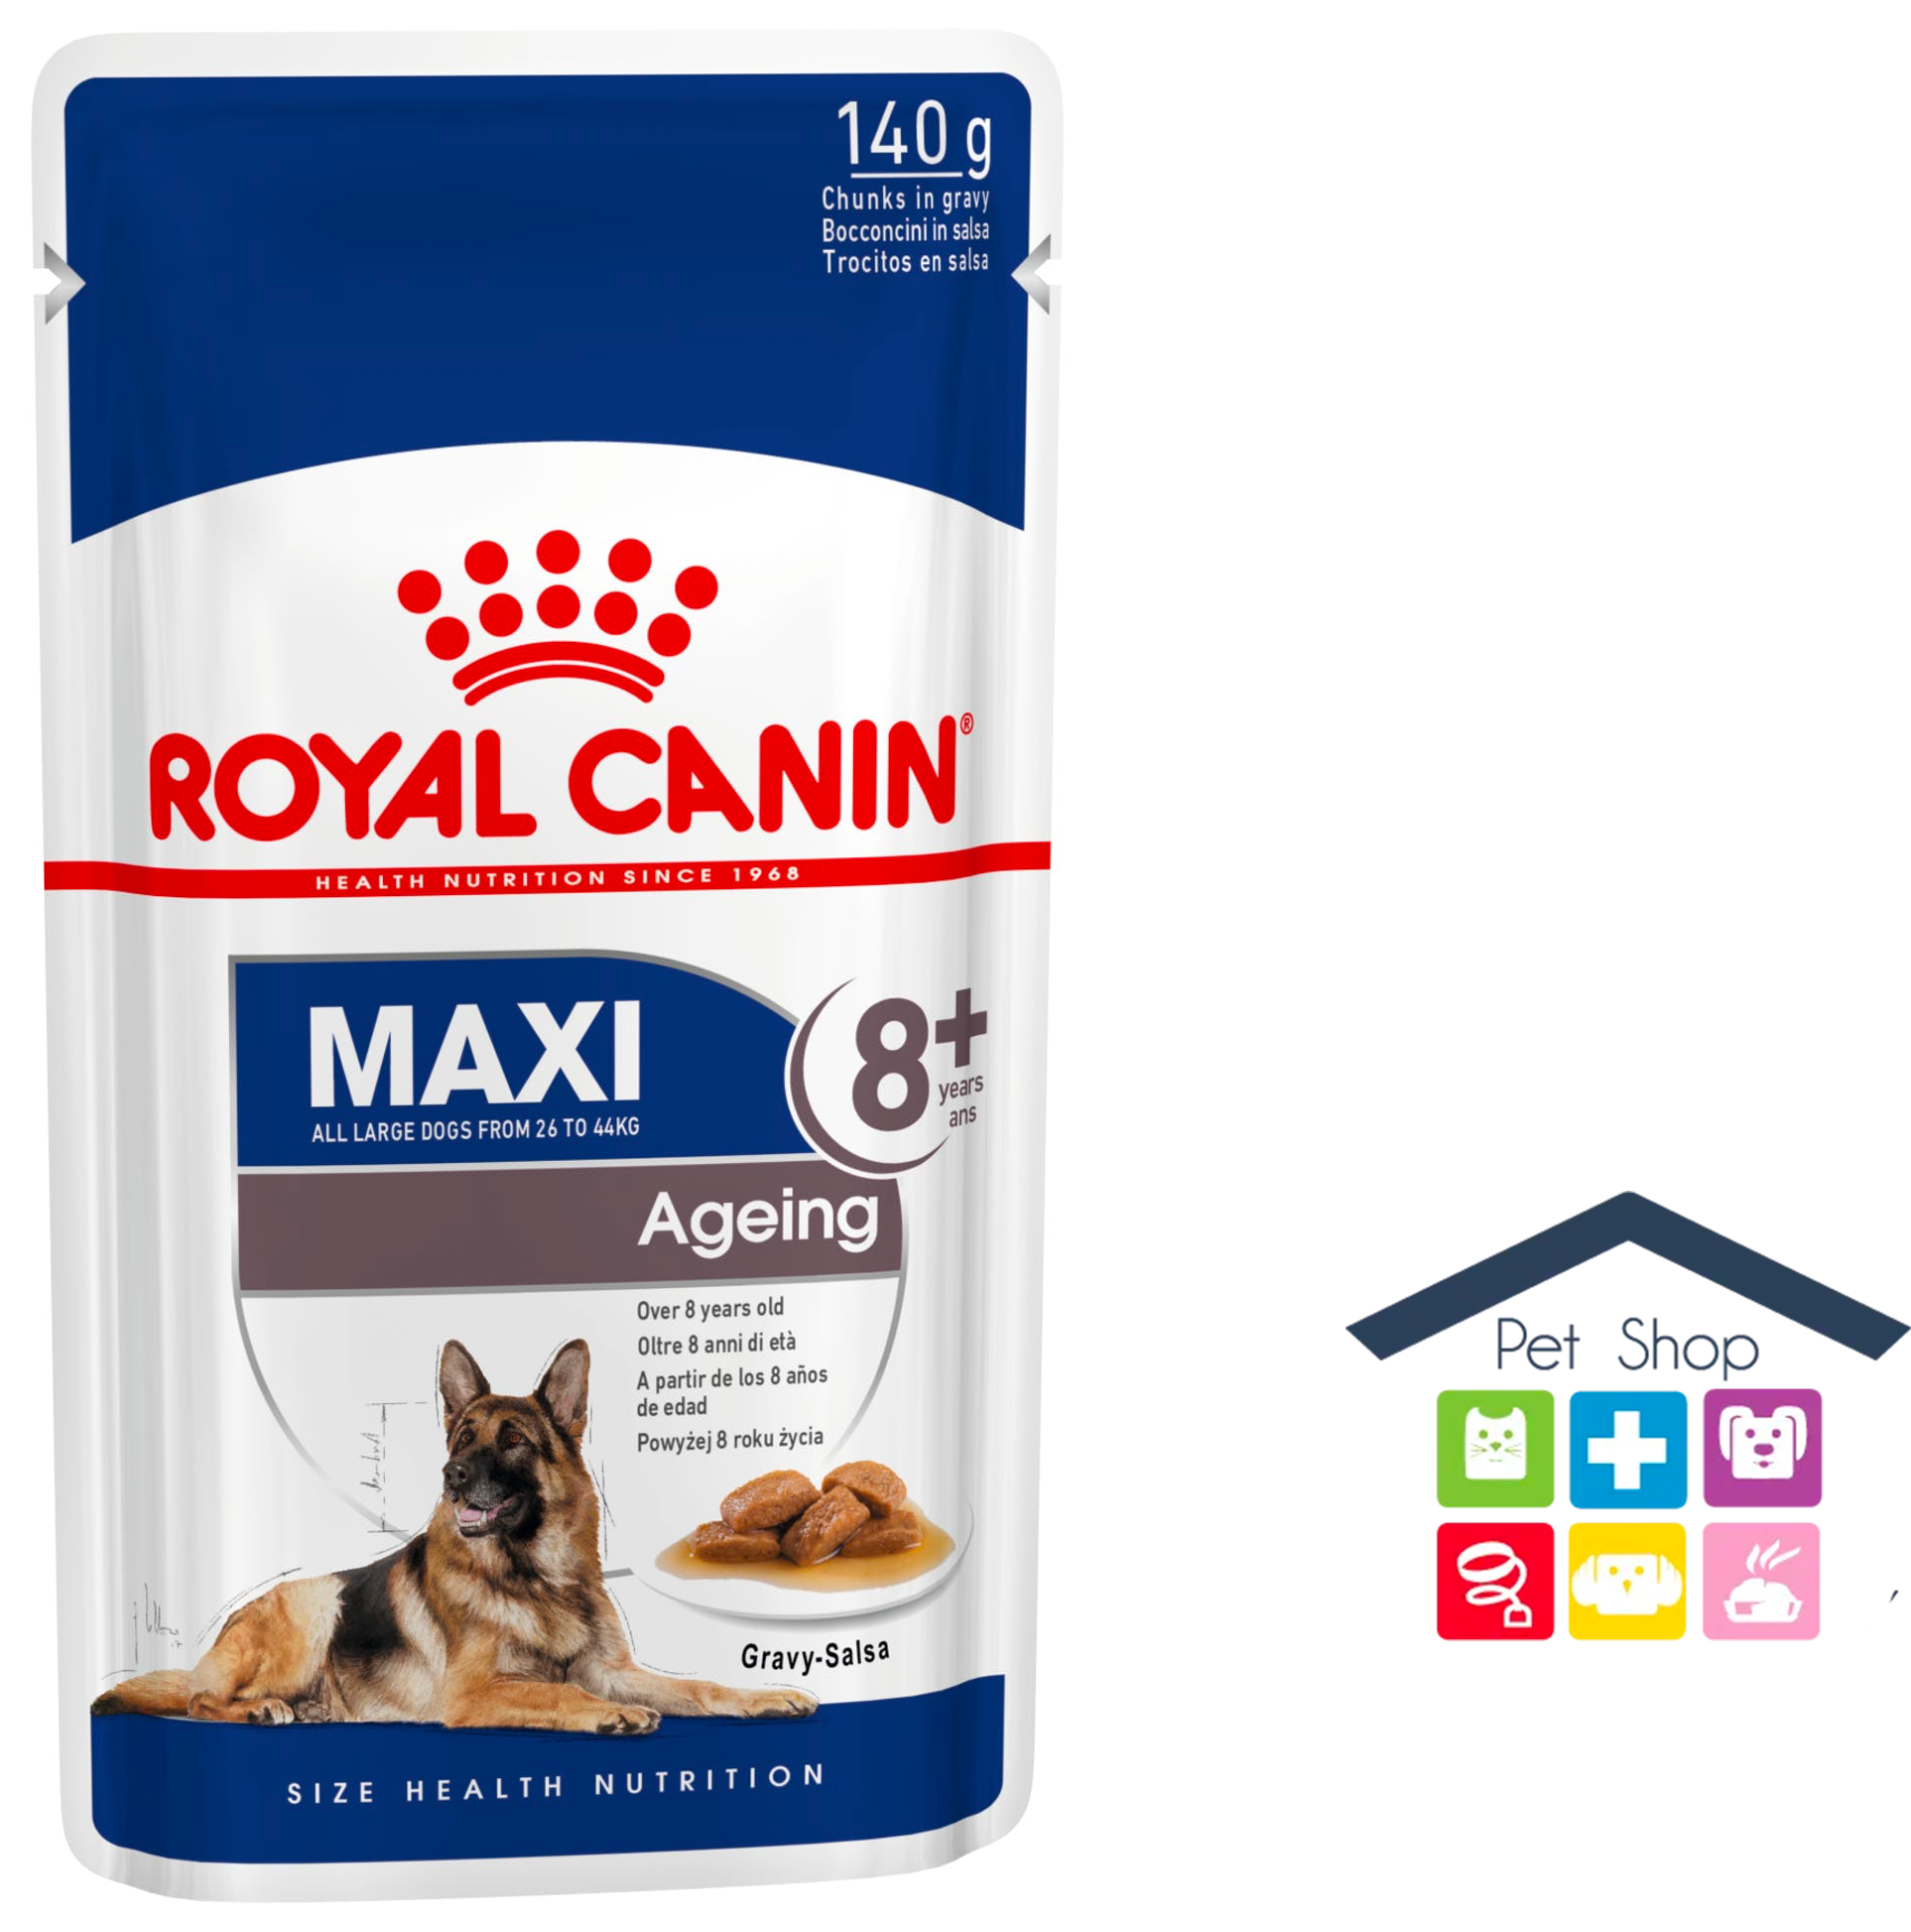 Royal Canin Cane | Linea Size HN | MAXI Adult Ageing8+ / 140g Bustina